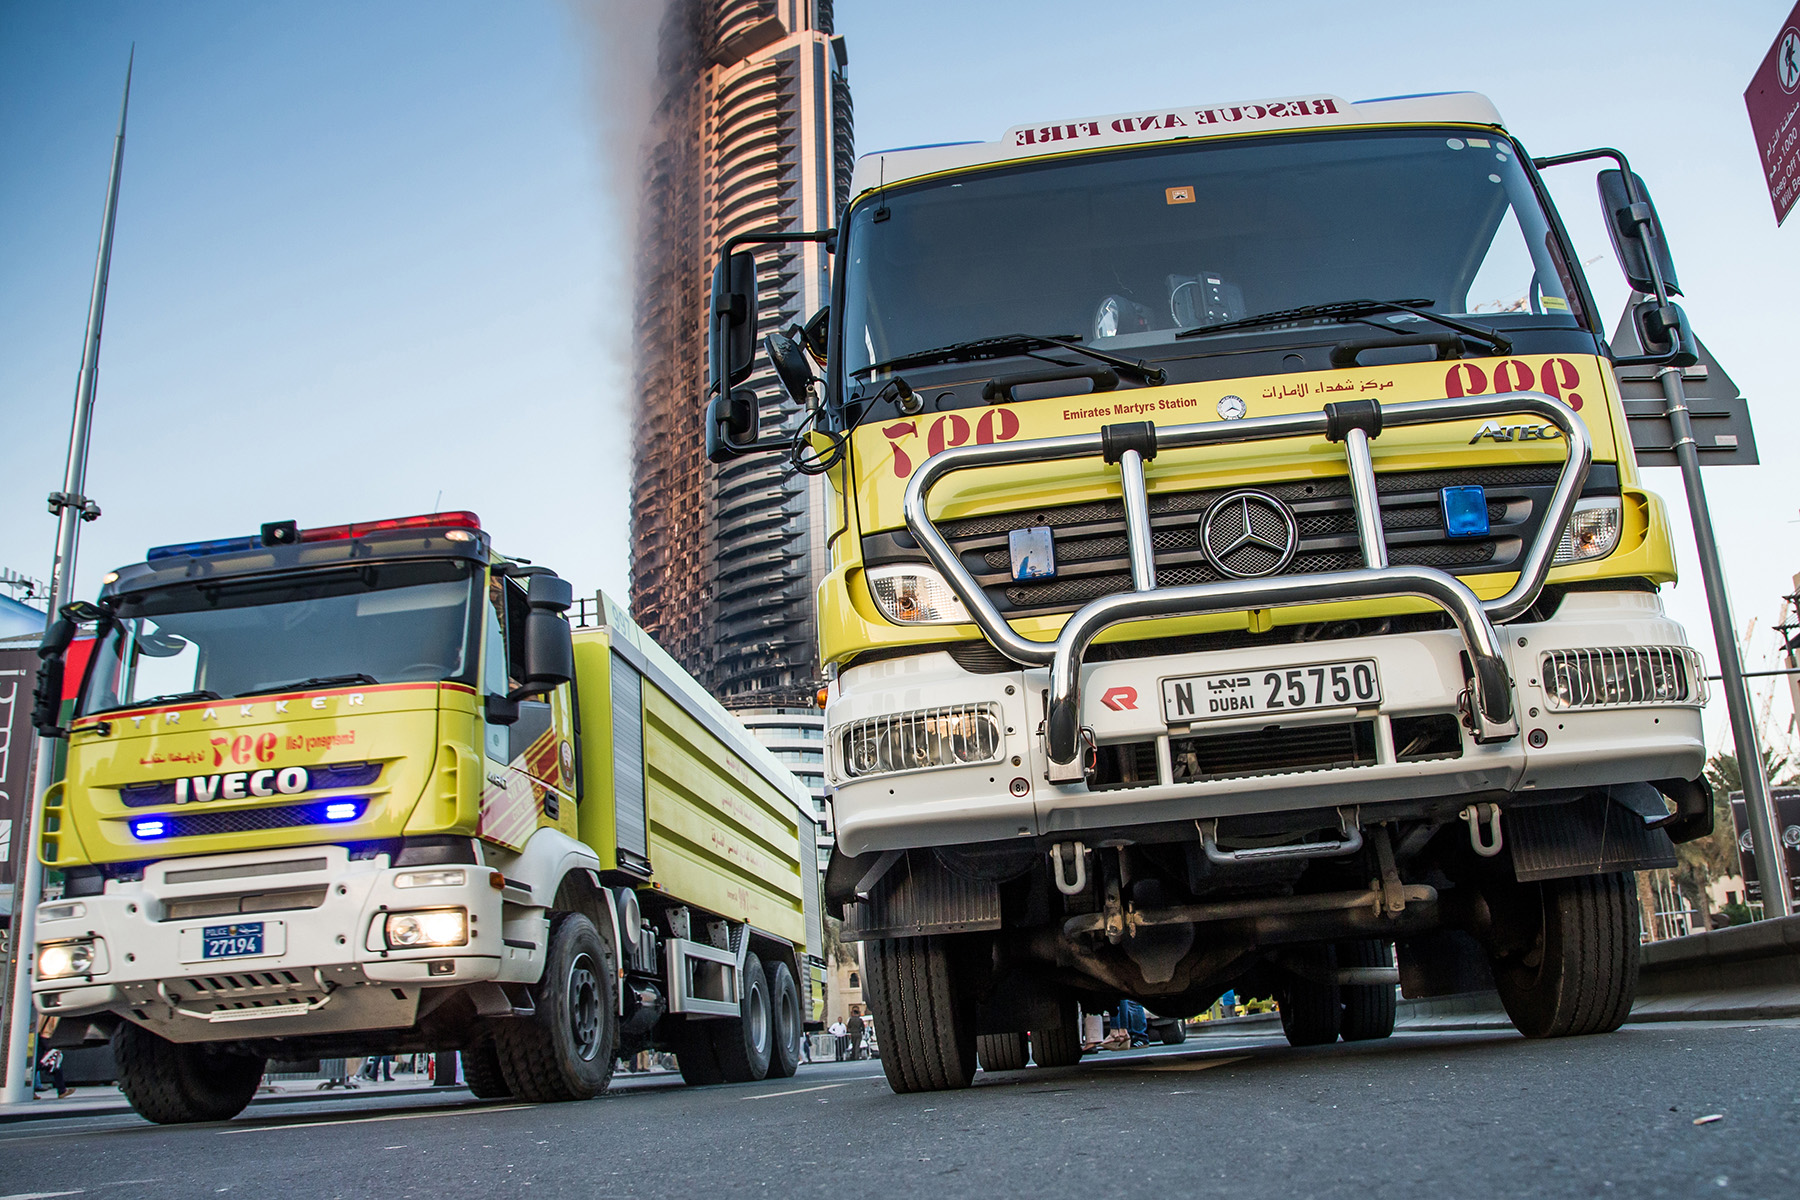 Fire engine in the UAE